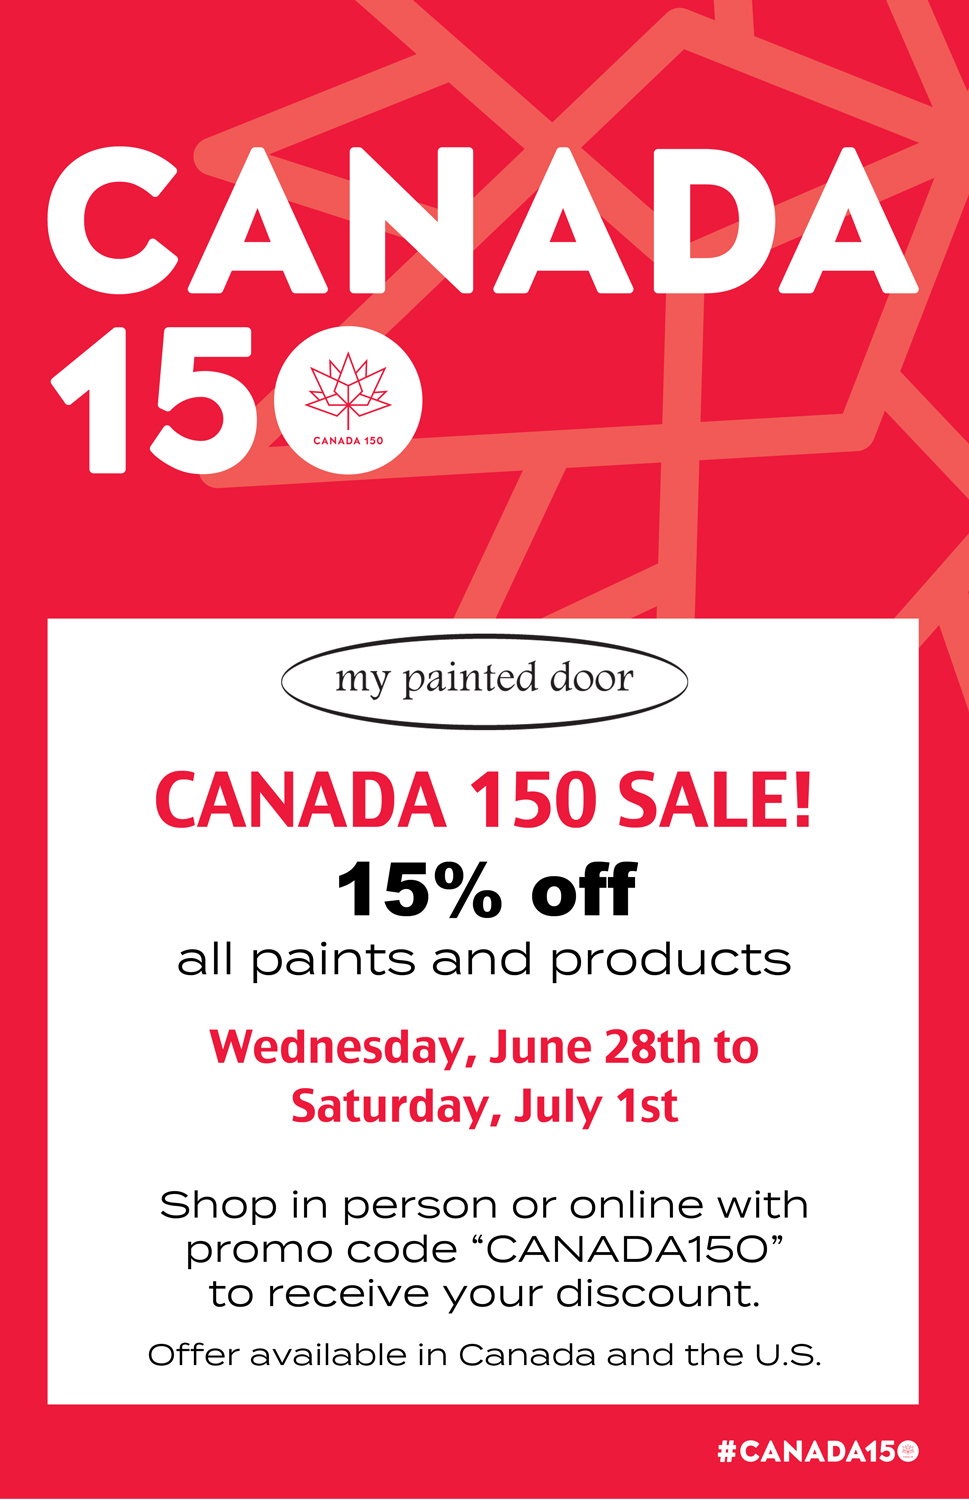 We're celebrating Canada's 150th Birthday!!